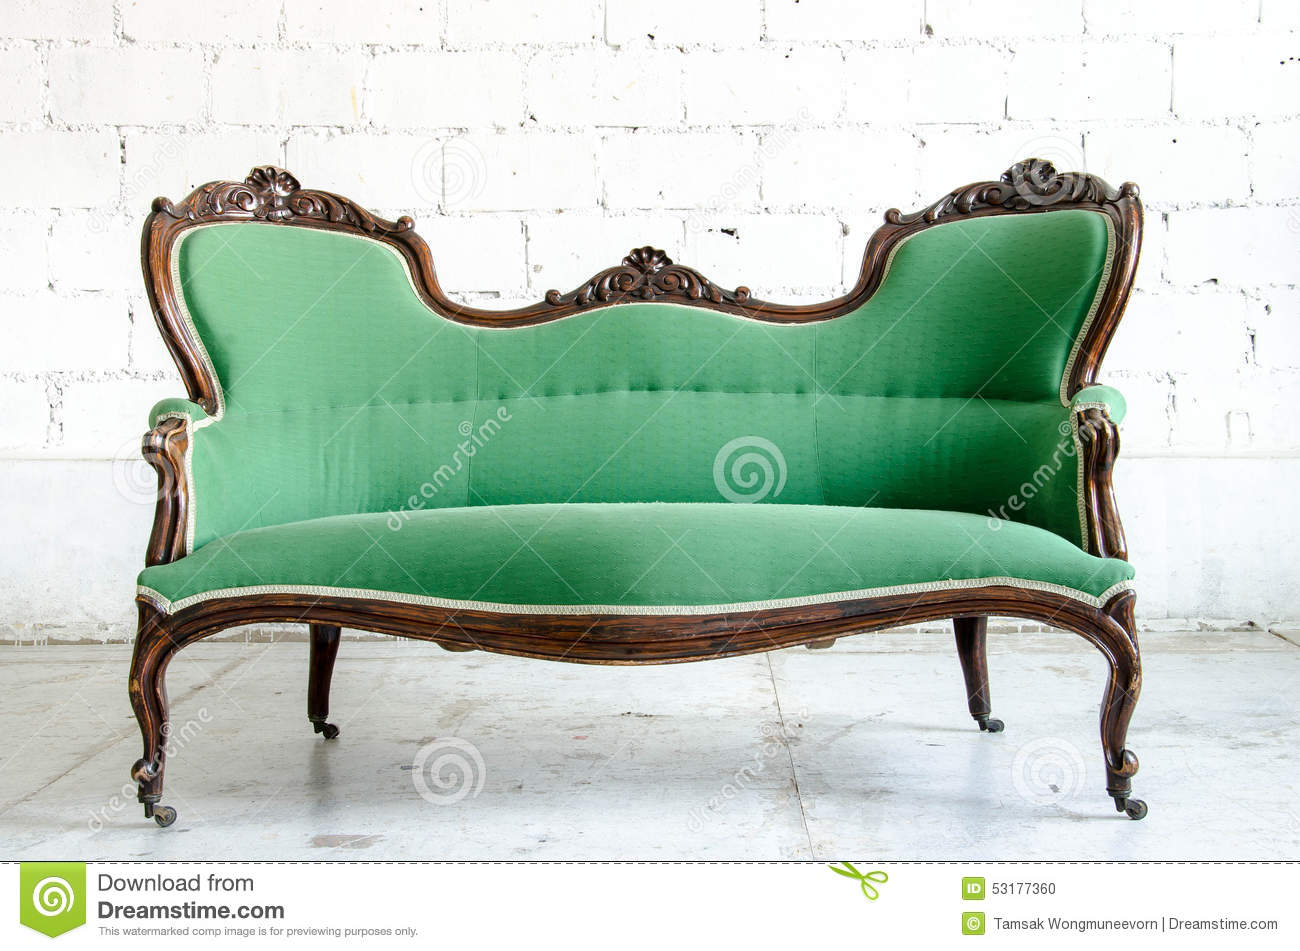 luxury green vintage style armchair sofa couch in vintage room stock photo image 53177360. Black Bedroom Furniture Sets. Home Design Ideas